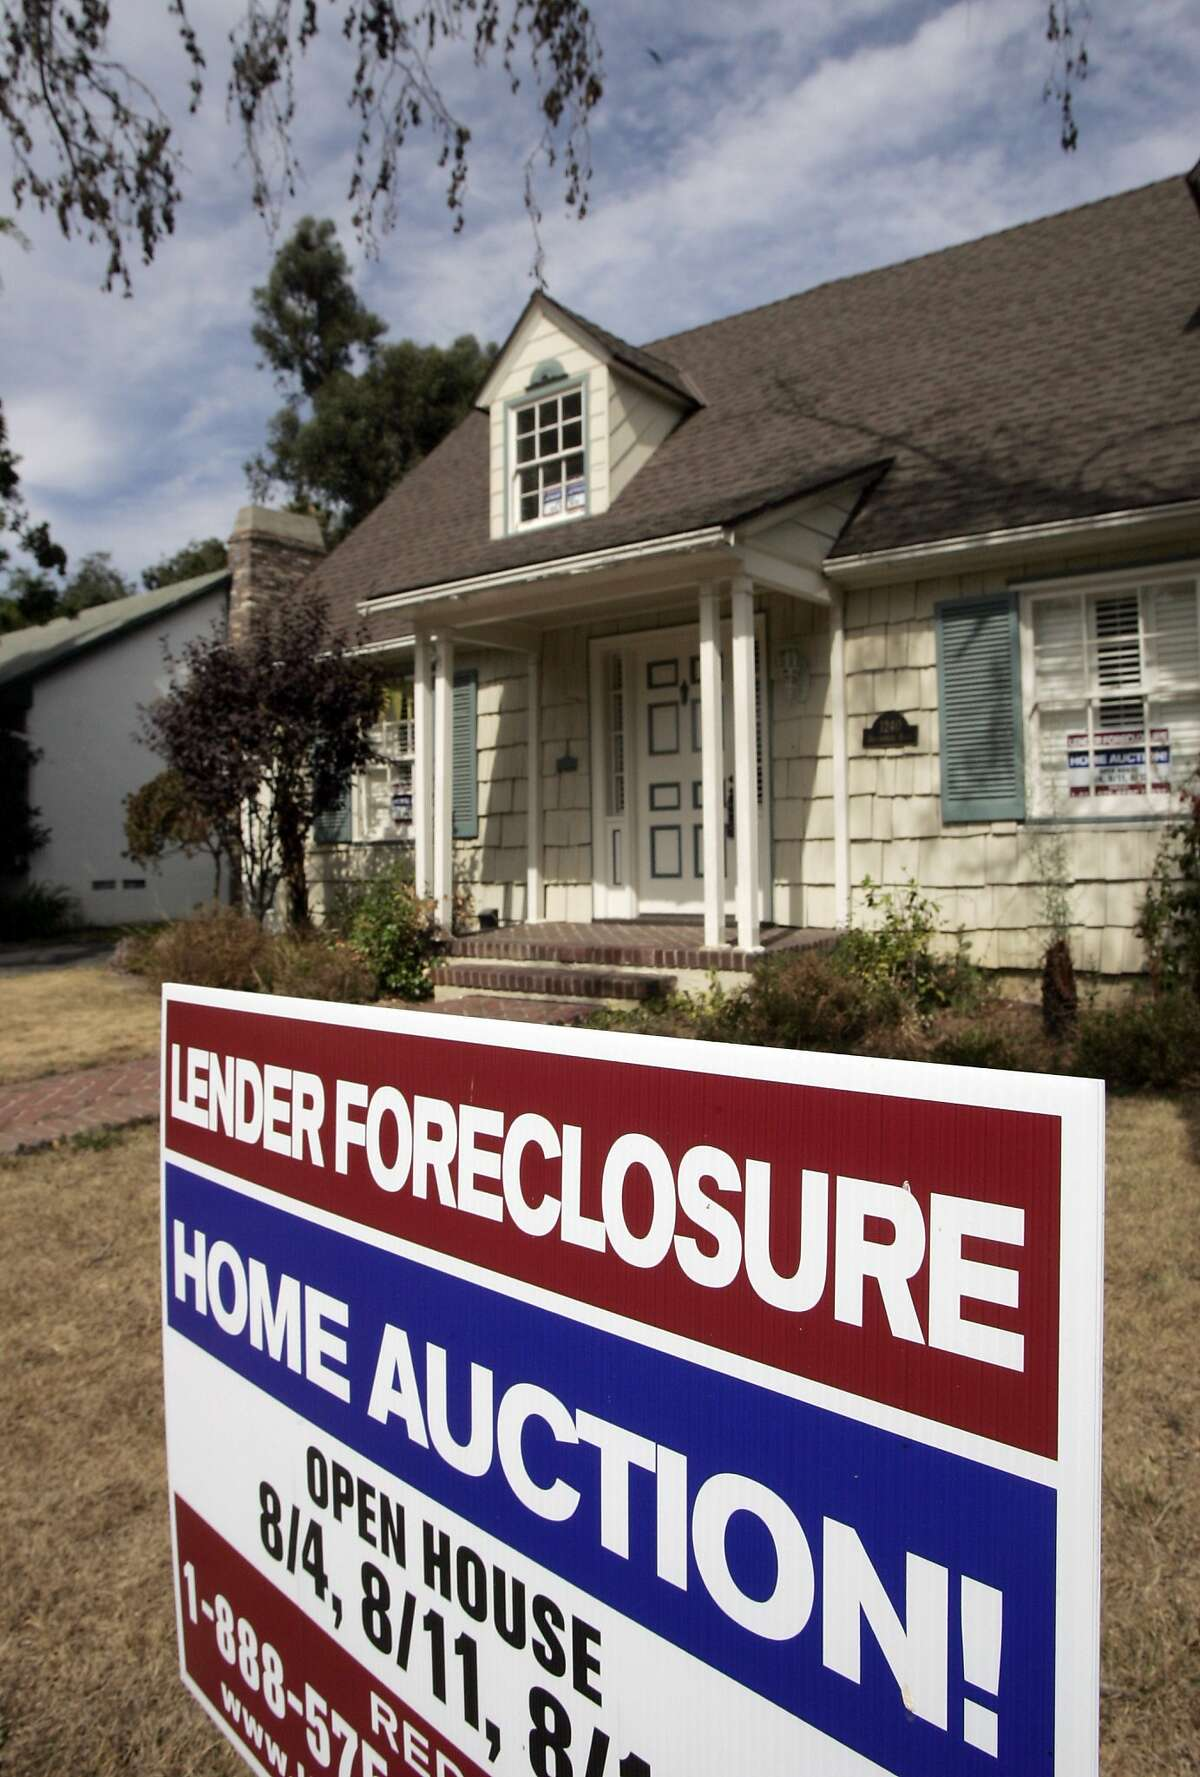 A home is advertised for sale at a foreclosure auction in Pasadena, Calif., in this Aug. 14, 2007 file photo. The number of U.S. households faced with losing their homes to foreclosure jumped 32 percent in April compared with the same month last year, with Nevada, Florida and California showing the highest rates, according to data released Wednesday May 13, 2009. (AP Photo/Reed Saxon, file)